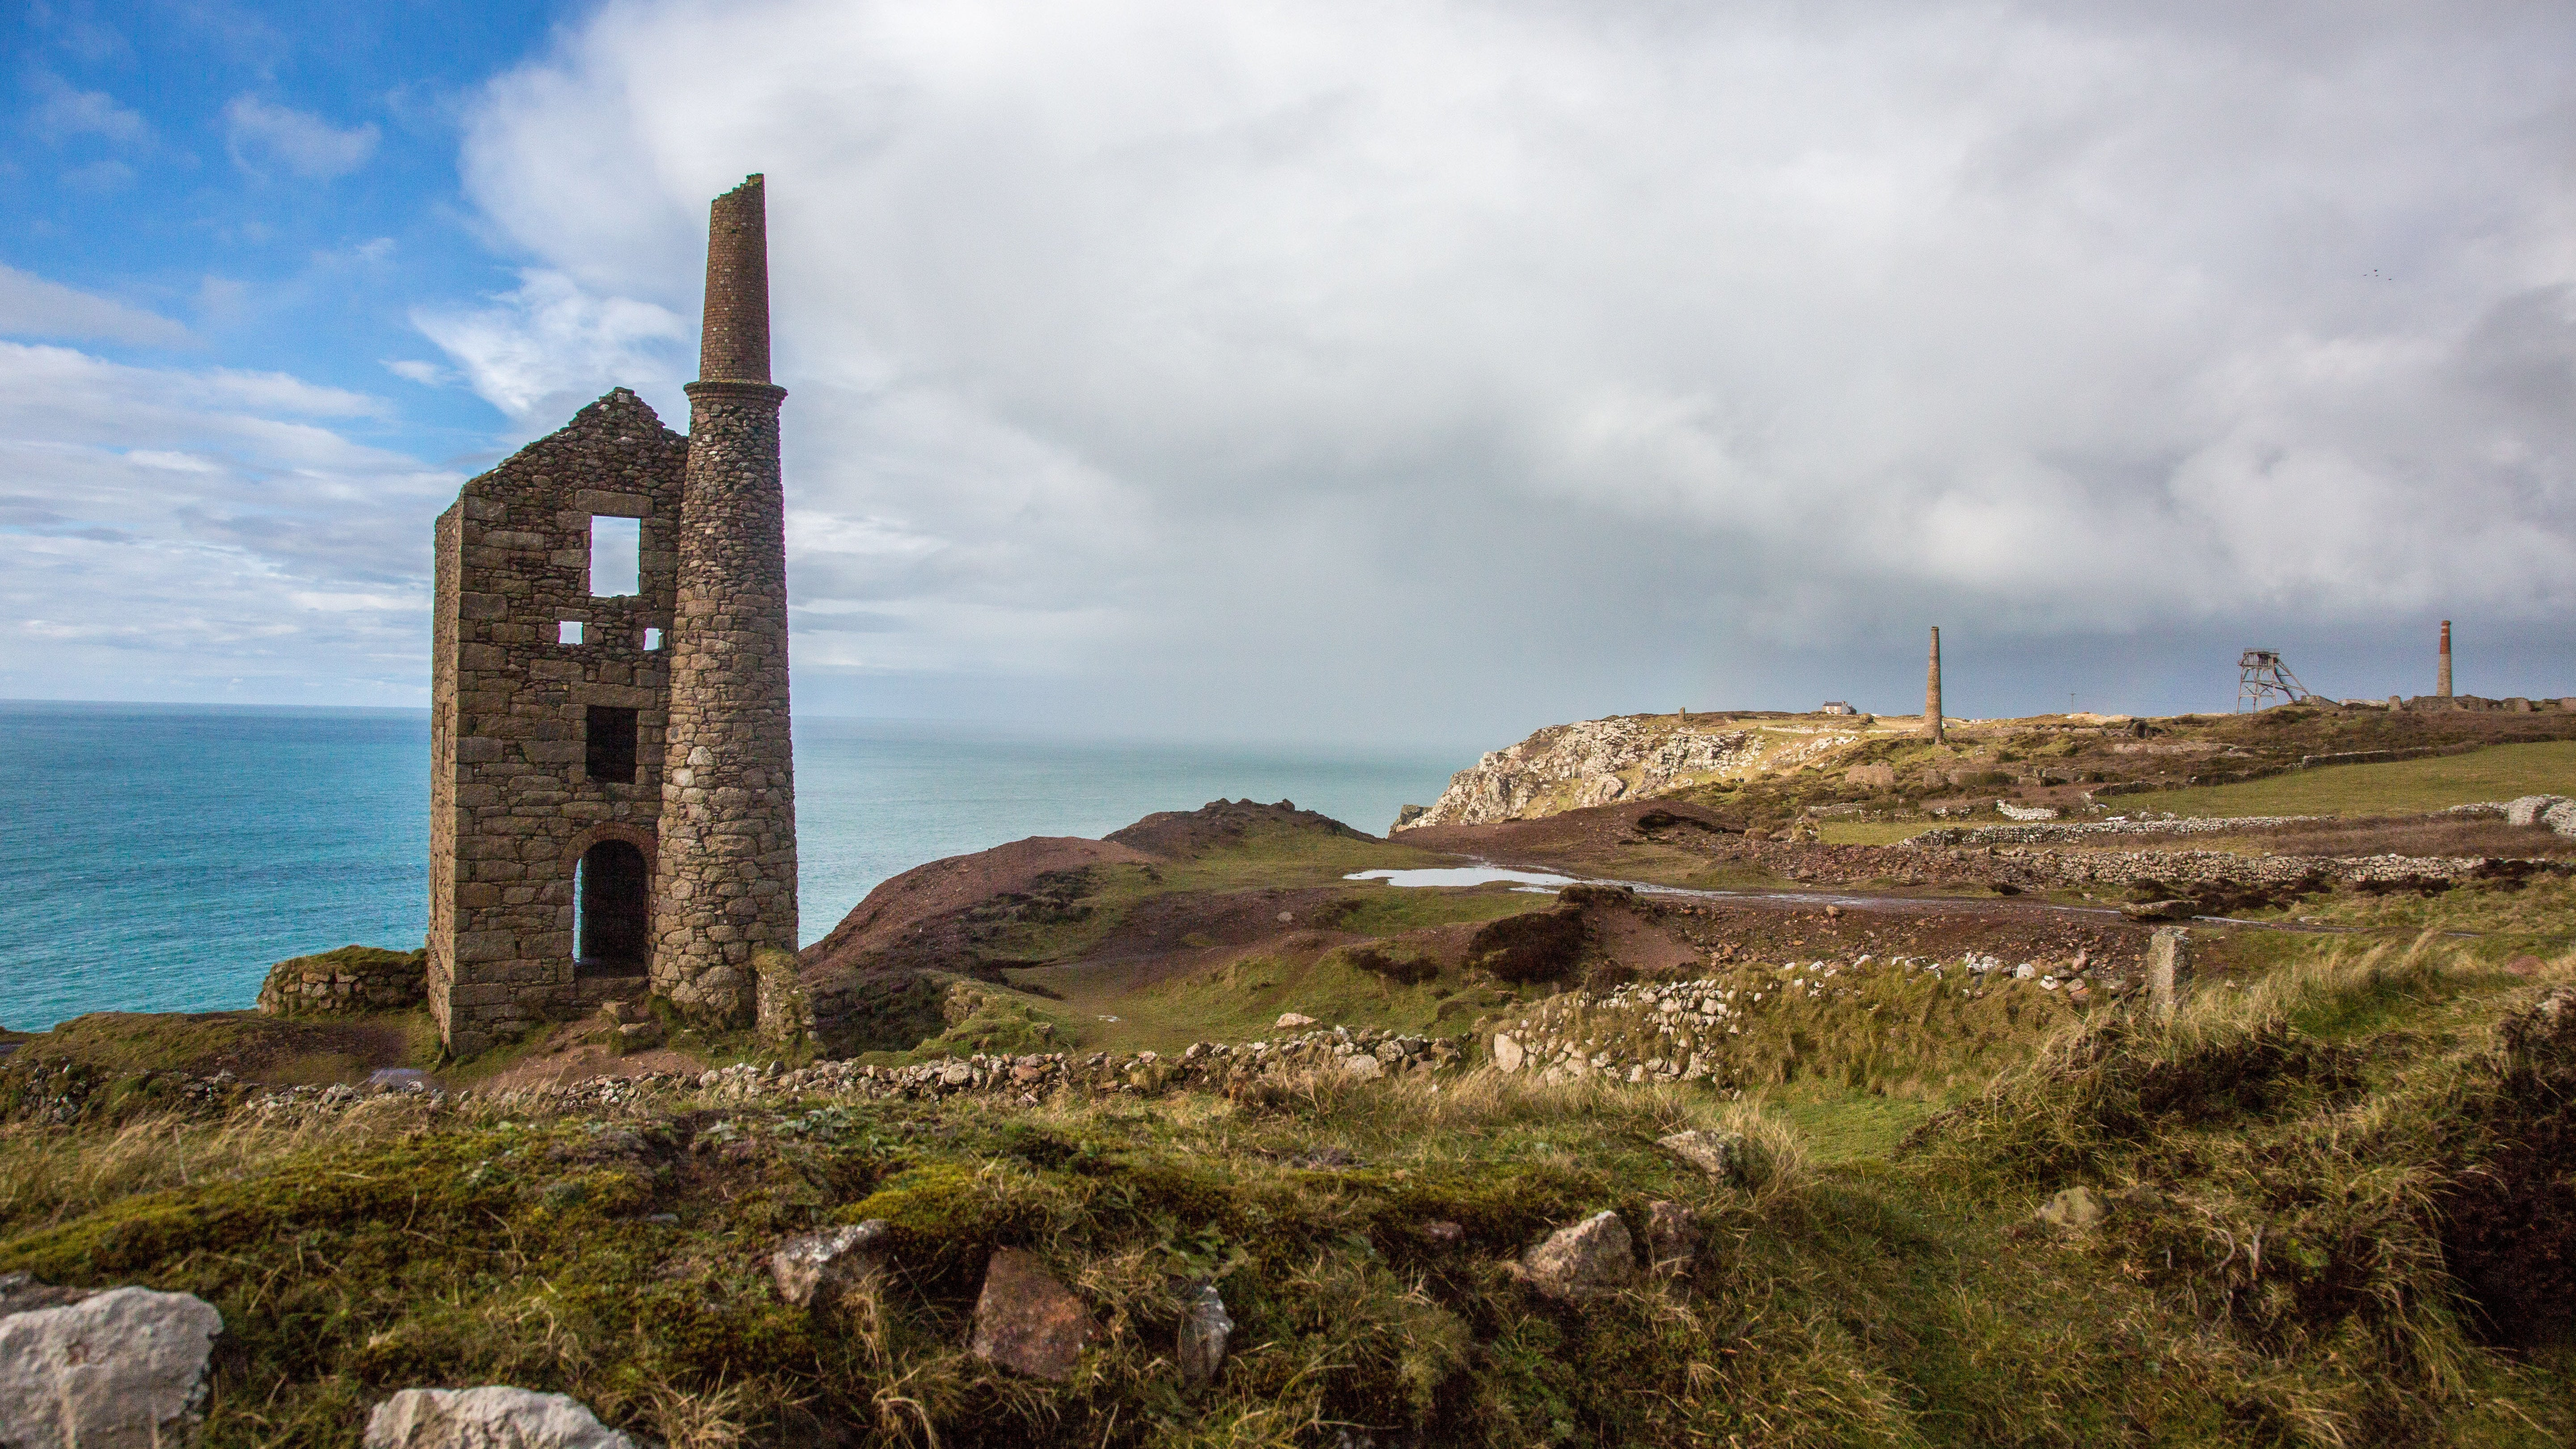 View of the Botallack mines